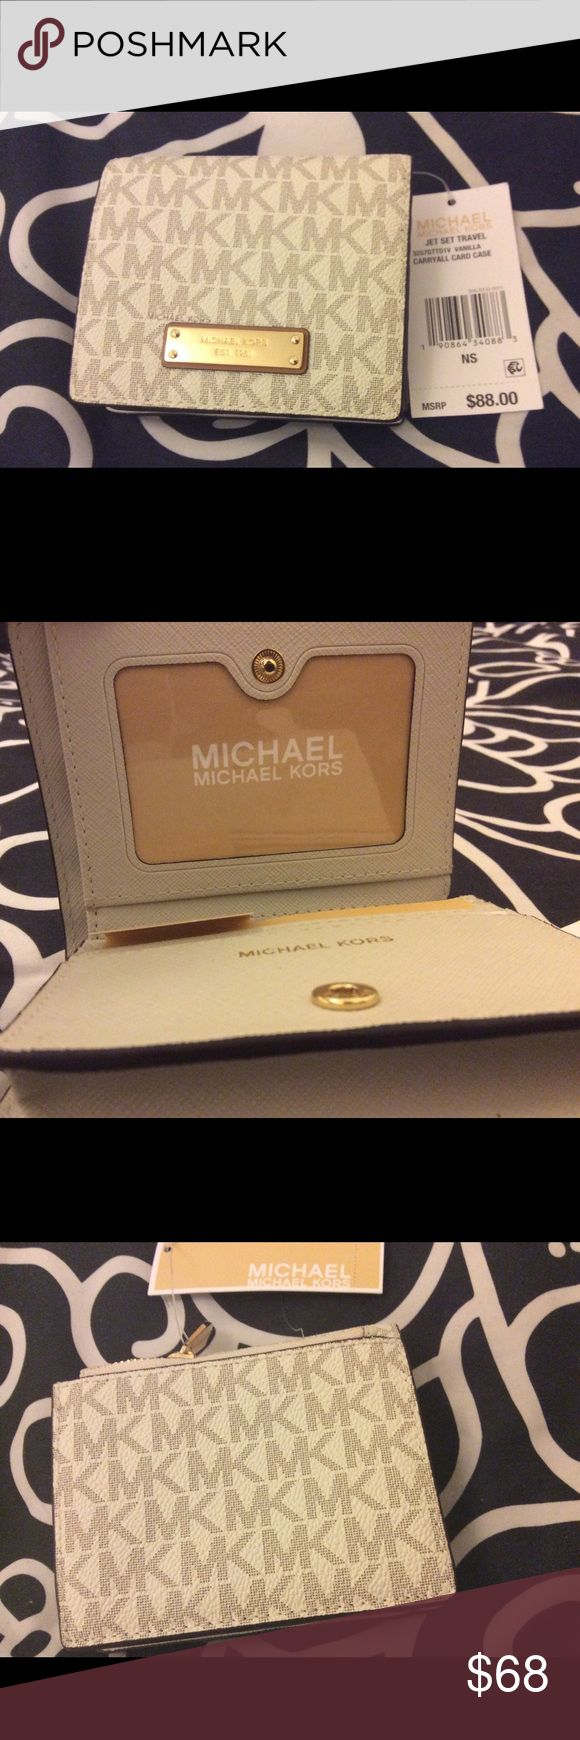 Michael Kors Jet Set Travel Wallet☀️Sale☀️ This gorgeous MK logo wallet in Vanilla is compact. As this wallet is perfect for moderate storage of cash and credit cards, you'll never have to sacrifice style for utility. MICHAEL Michael Kors Bags Wallets